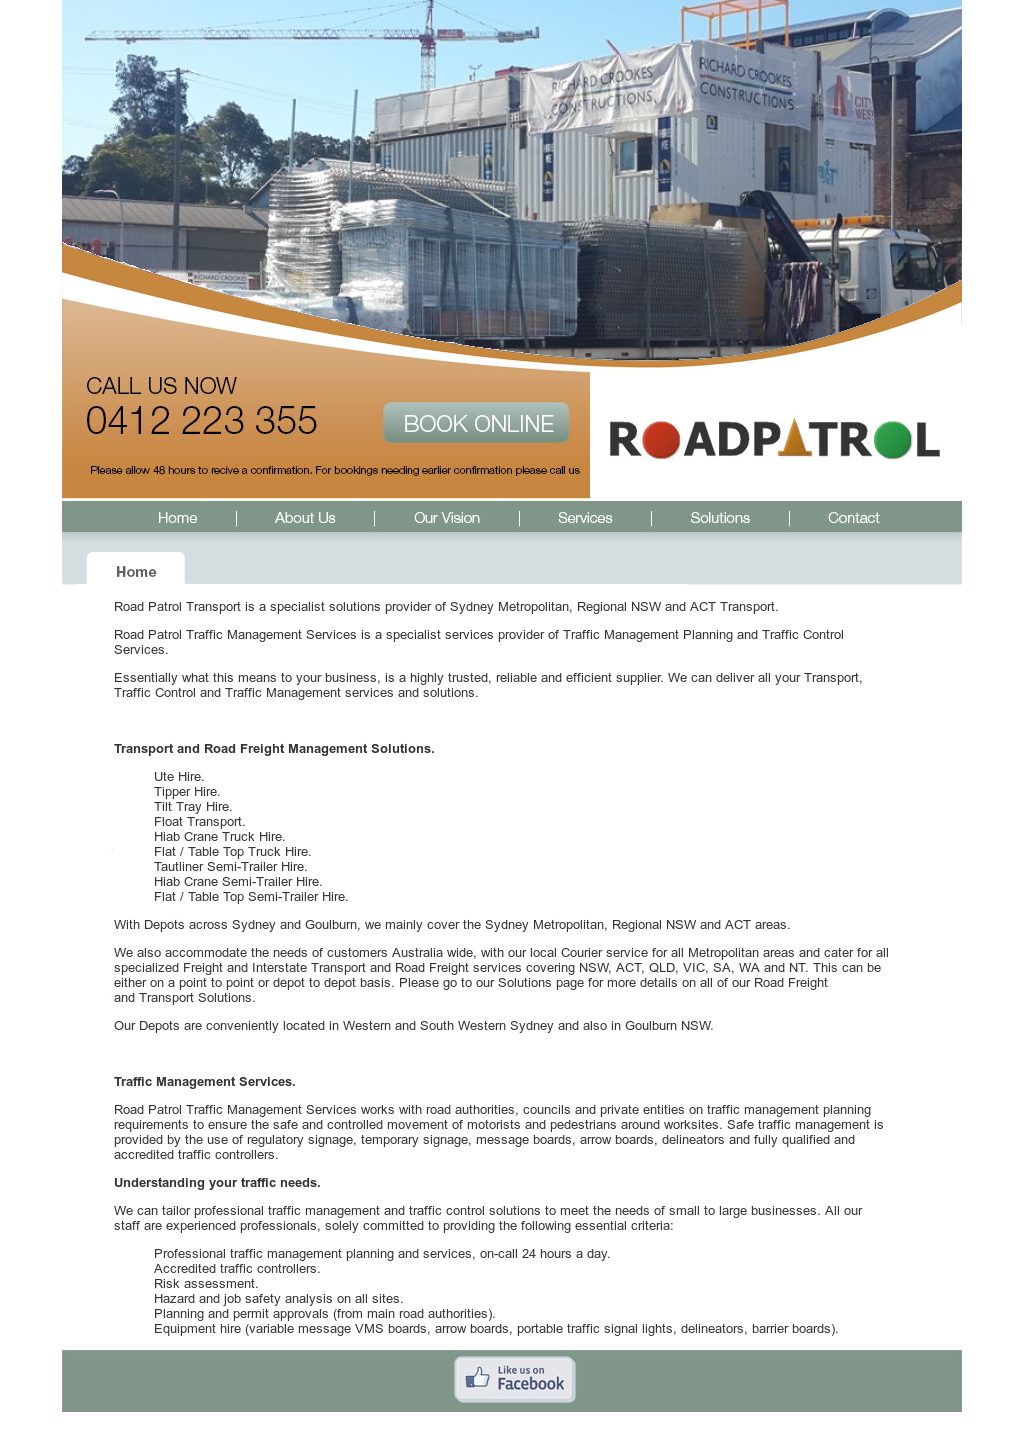 Road Patrol Transport Competitors, Revenue and Employees